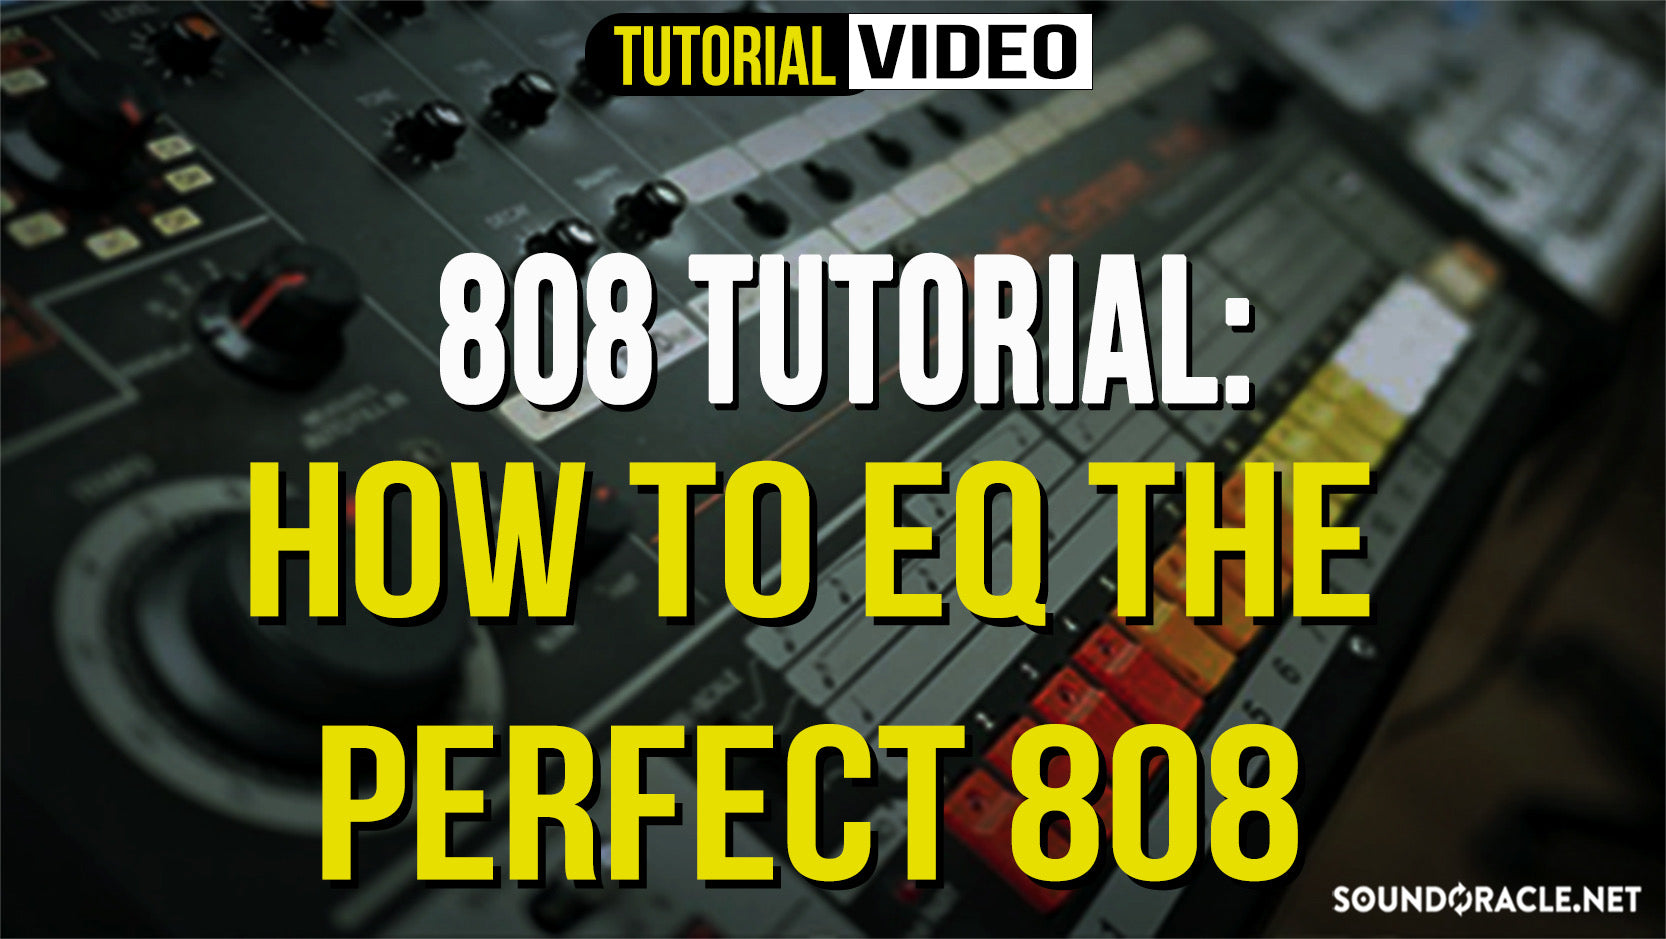 808 Tutorial - How To EQ The Perfect 808 | Sound Oracle